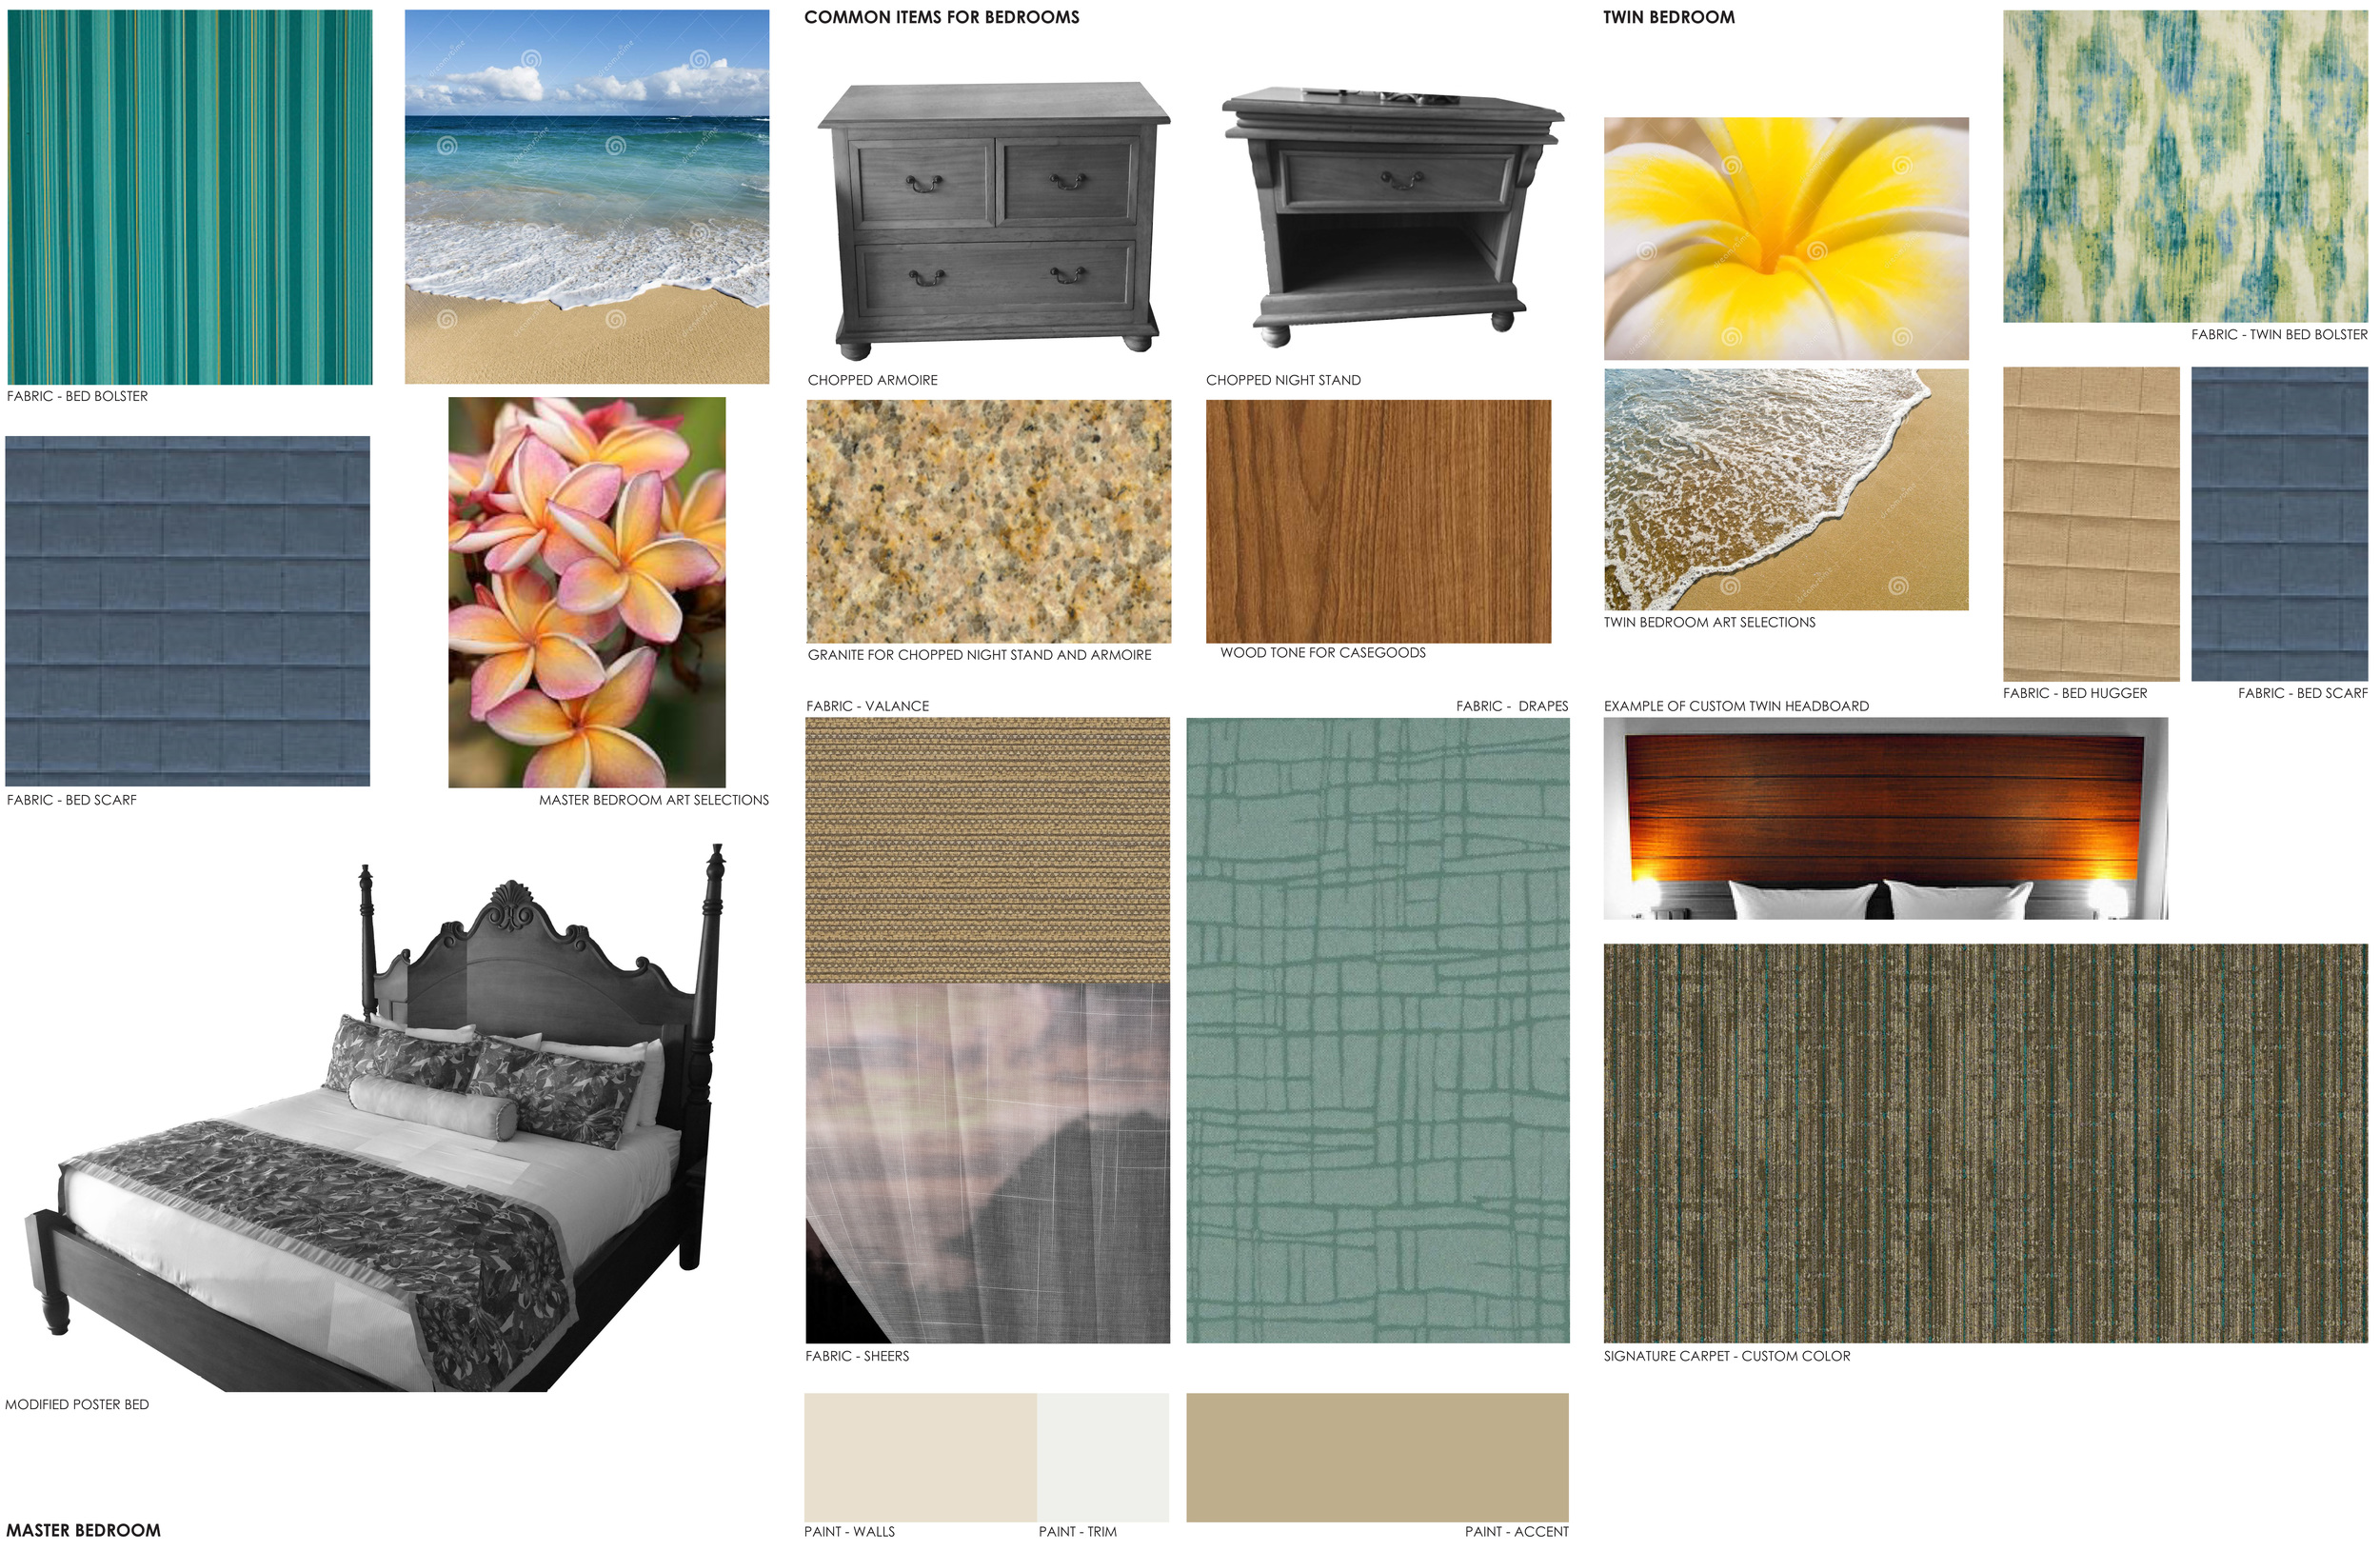 EDP Secluded Shores BEDROOM ROOM REVISION.jpg